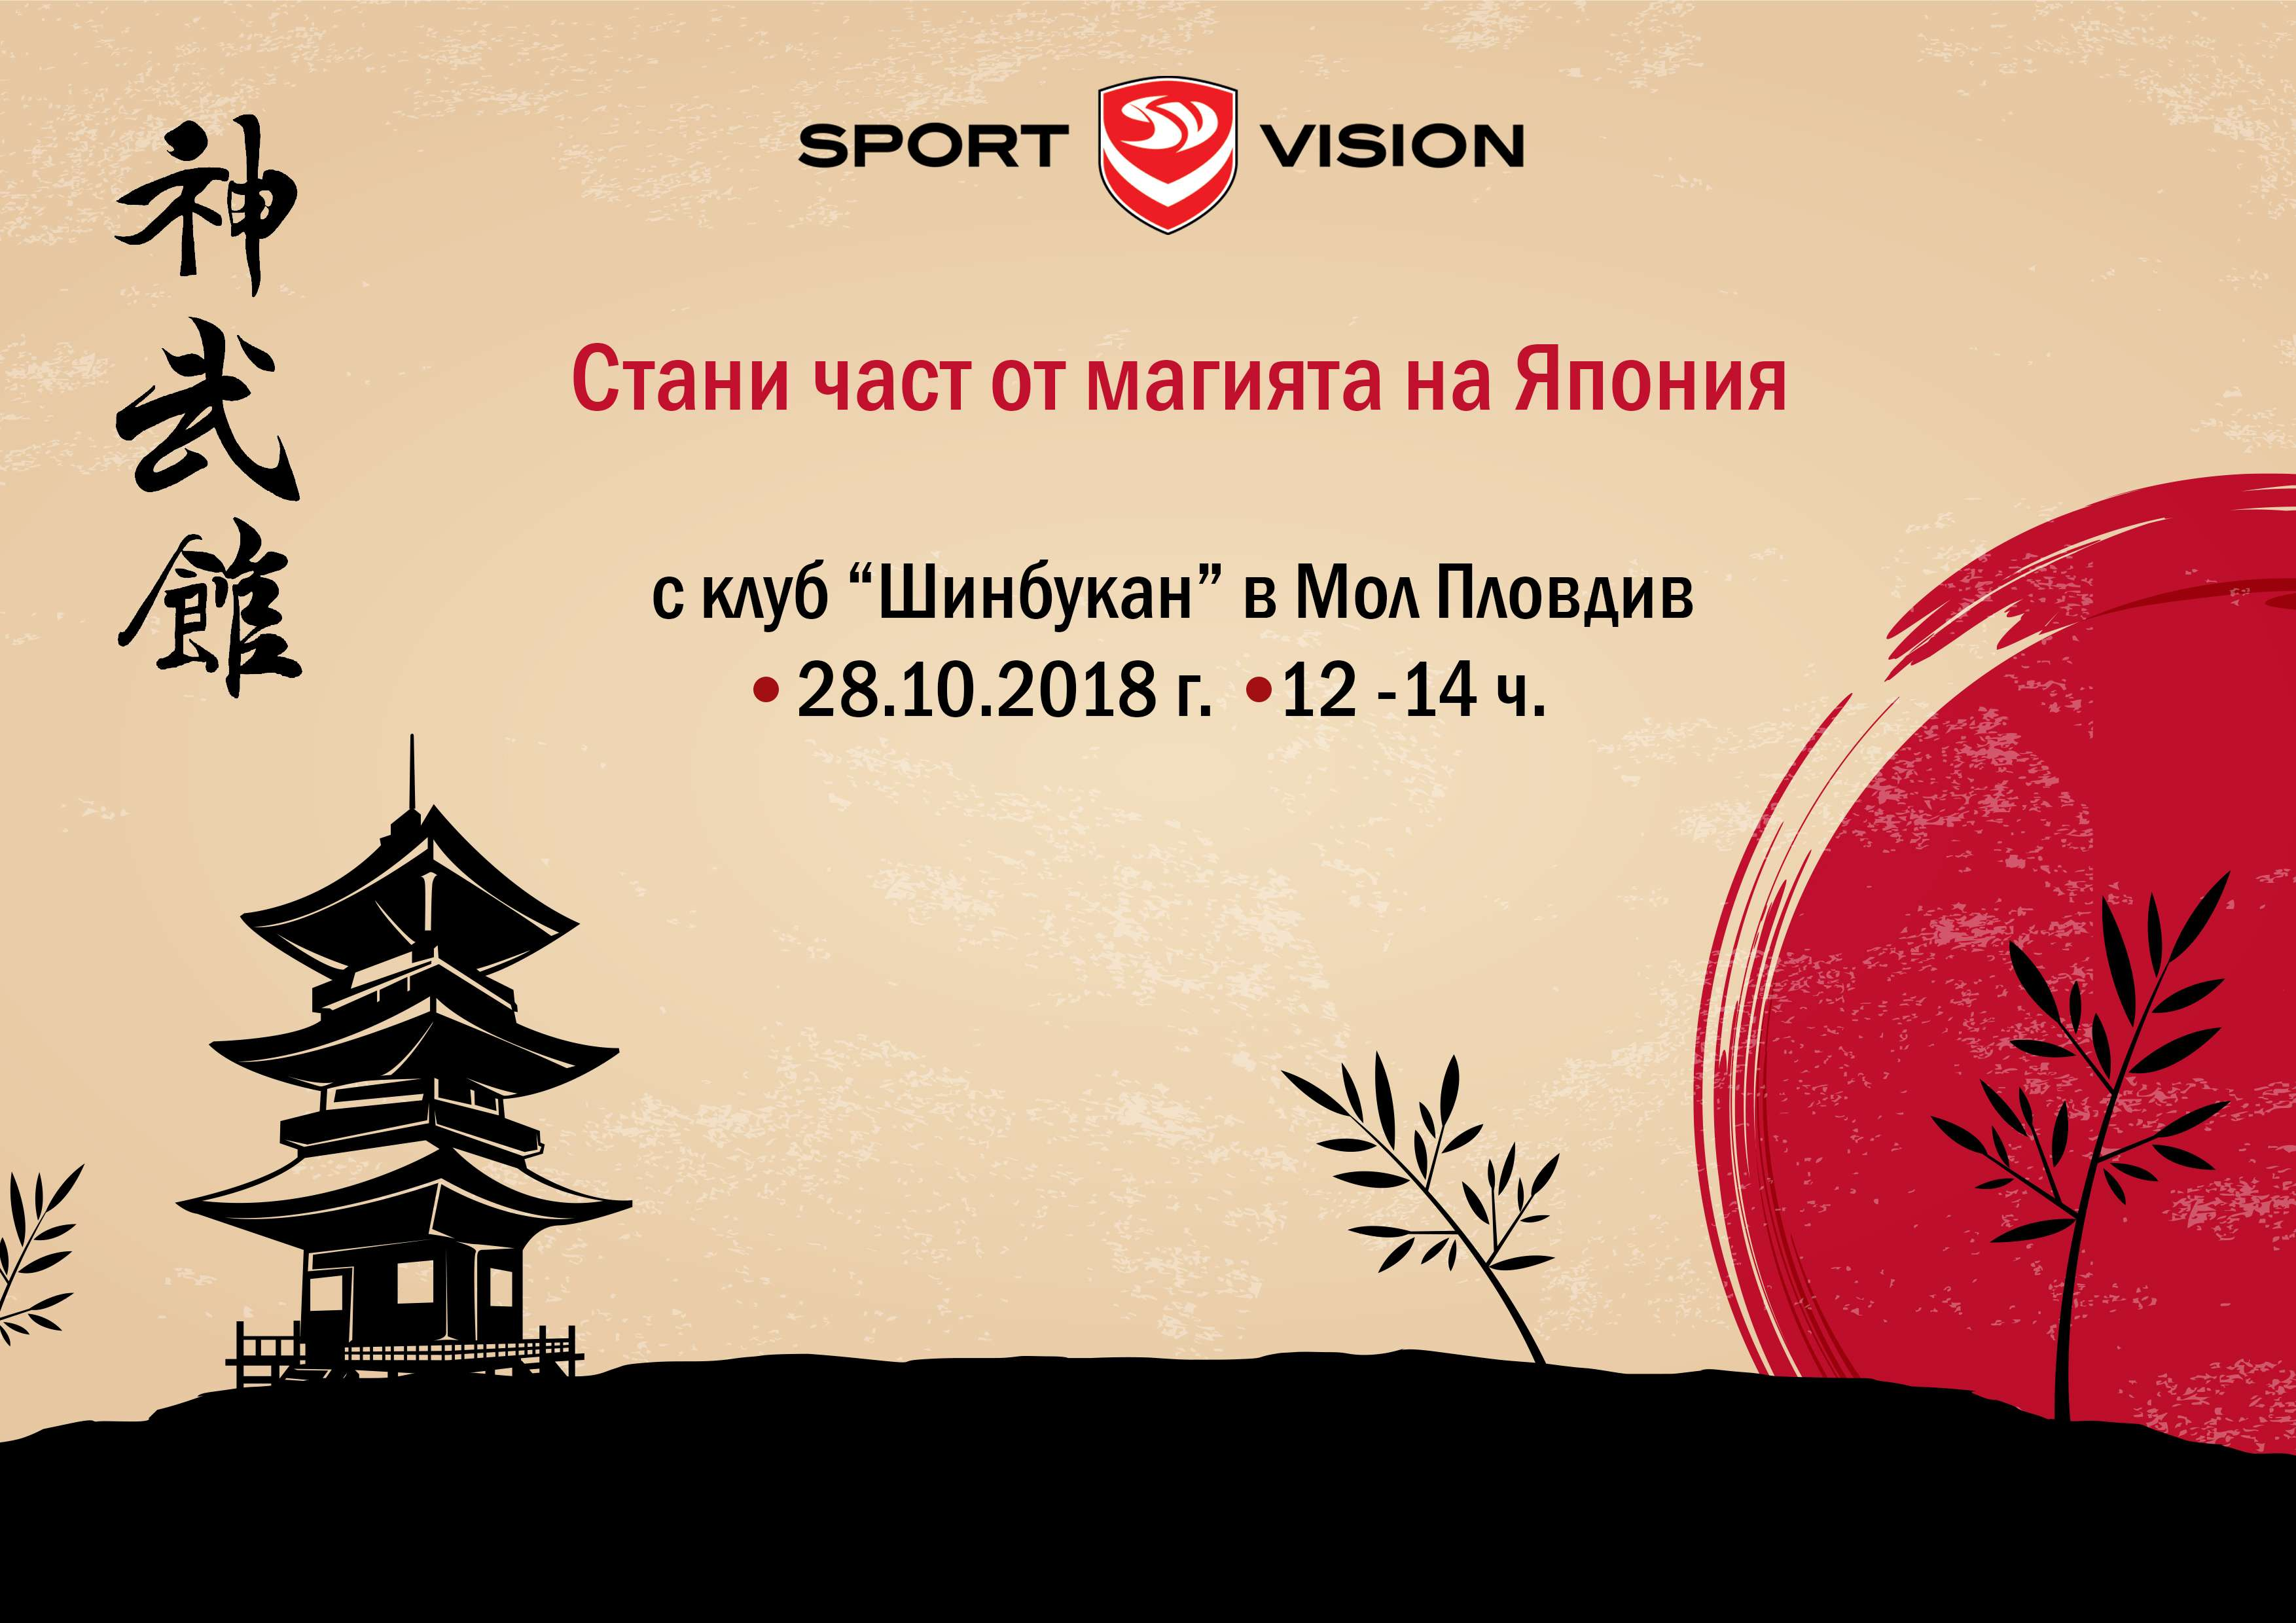 Two martial arts come to life in Mall Plovdiv